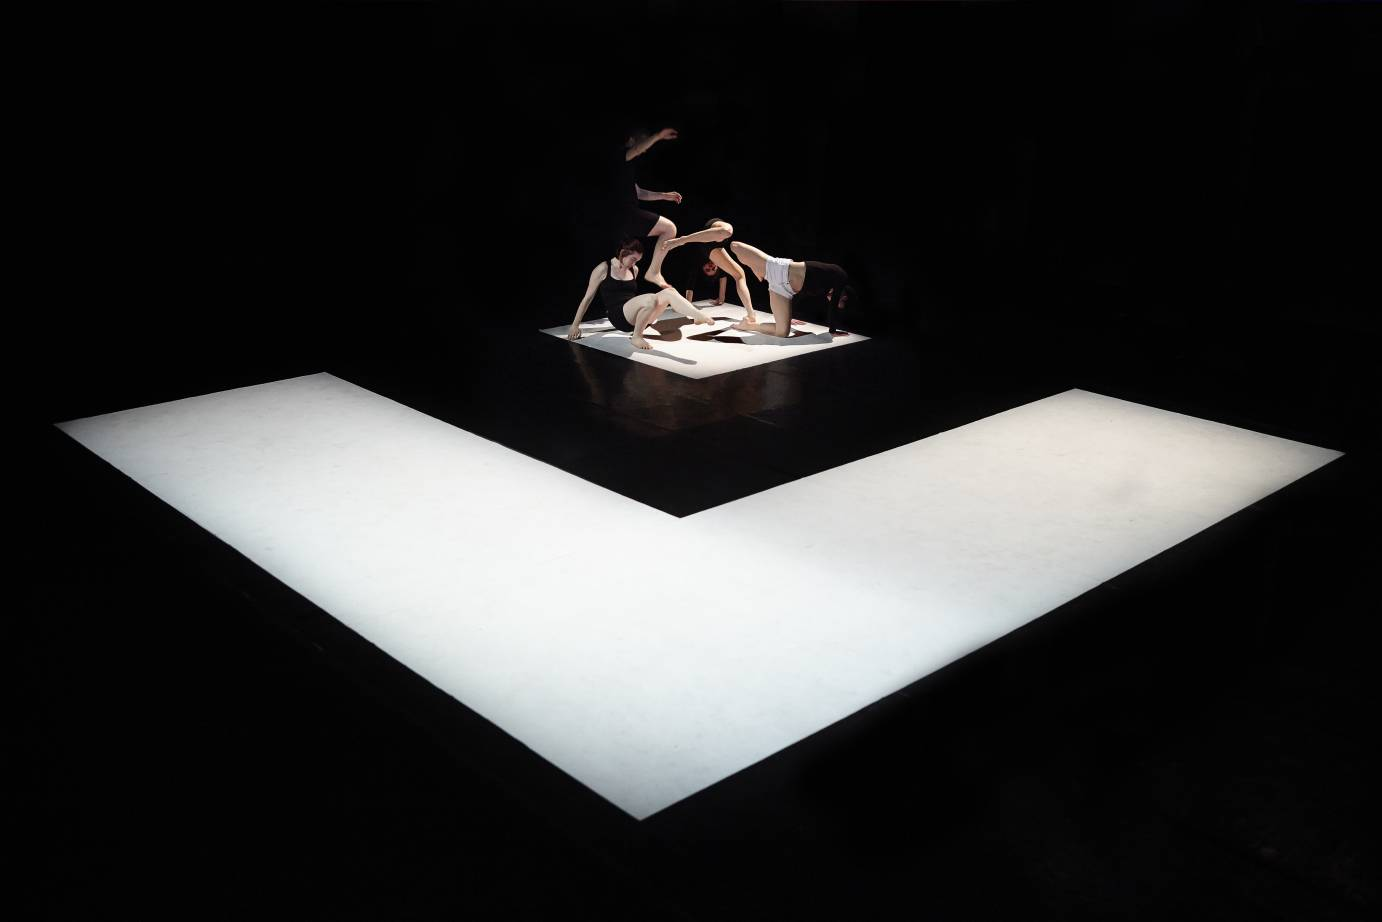 On a floor of a big white square holding a small black one, performers crouch with a leg or arm extended